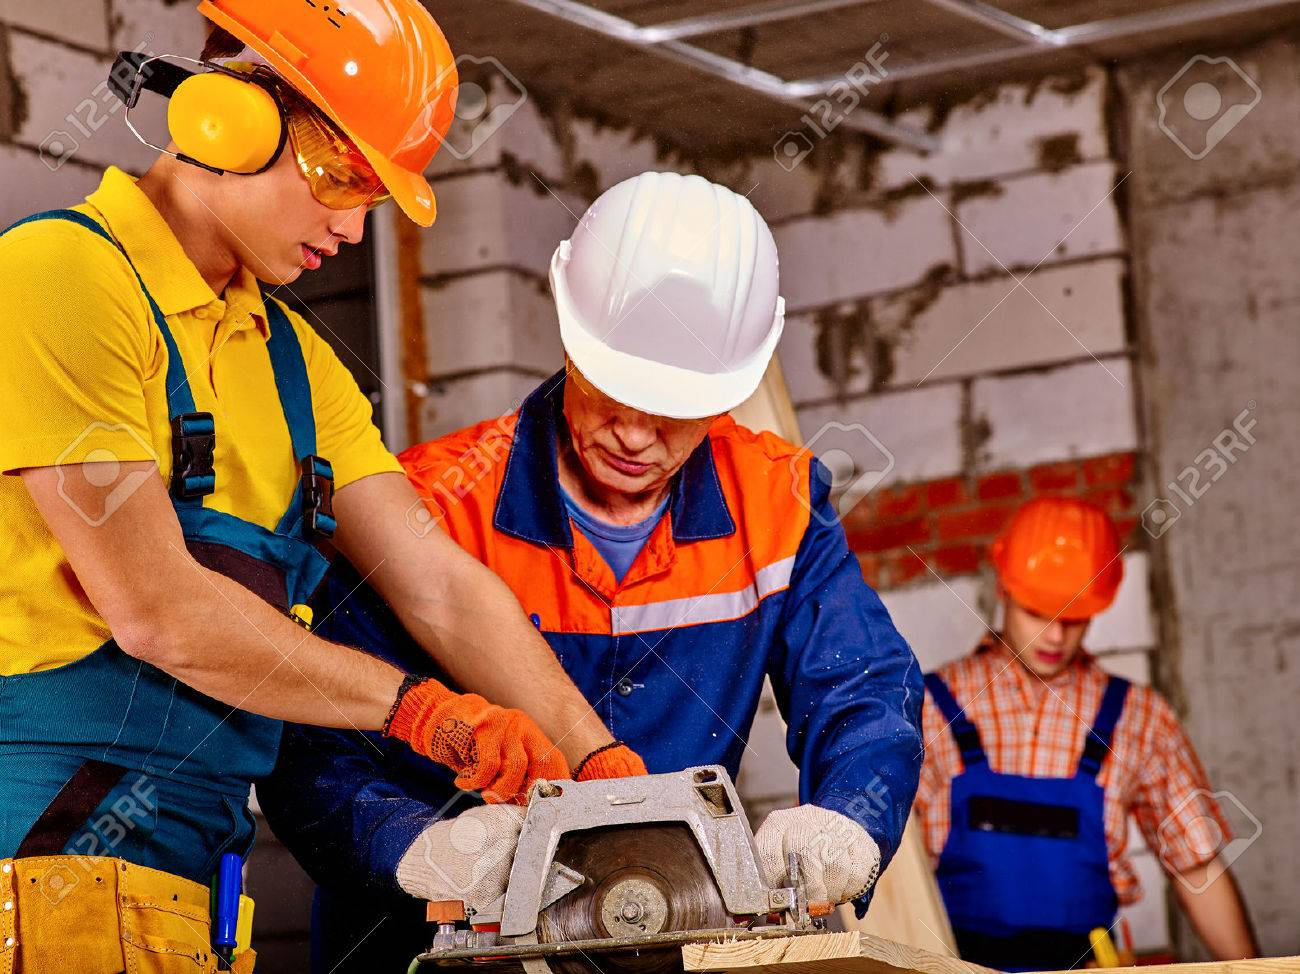 Working group people builder with circular saw. Brick wall in background. - 51599481